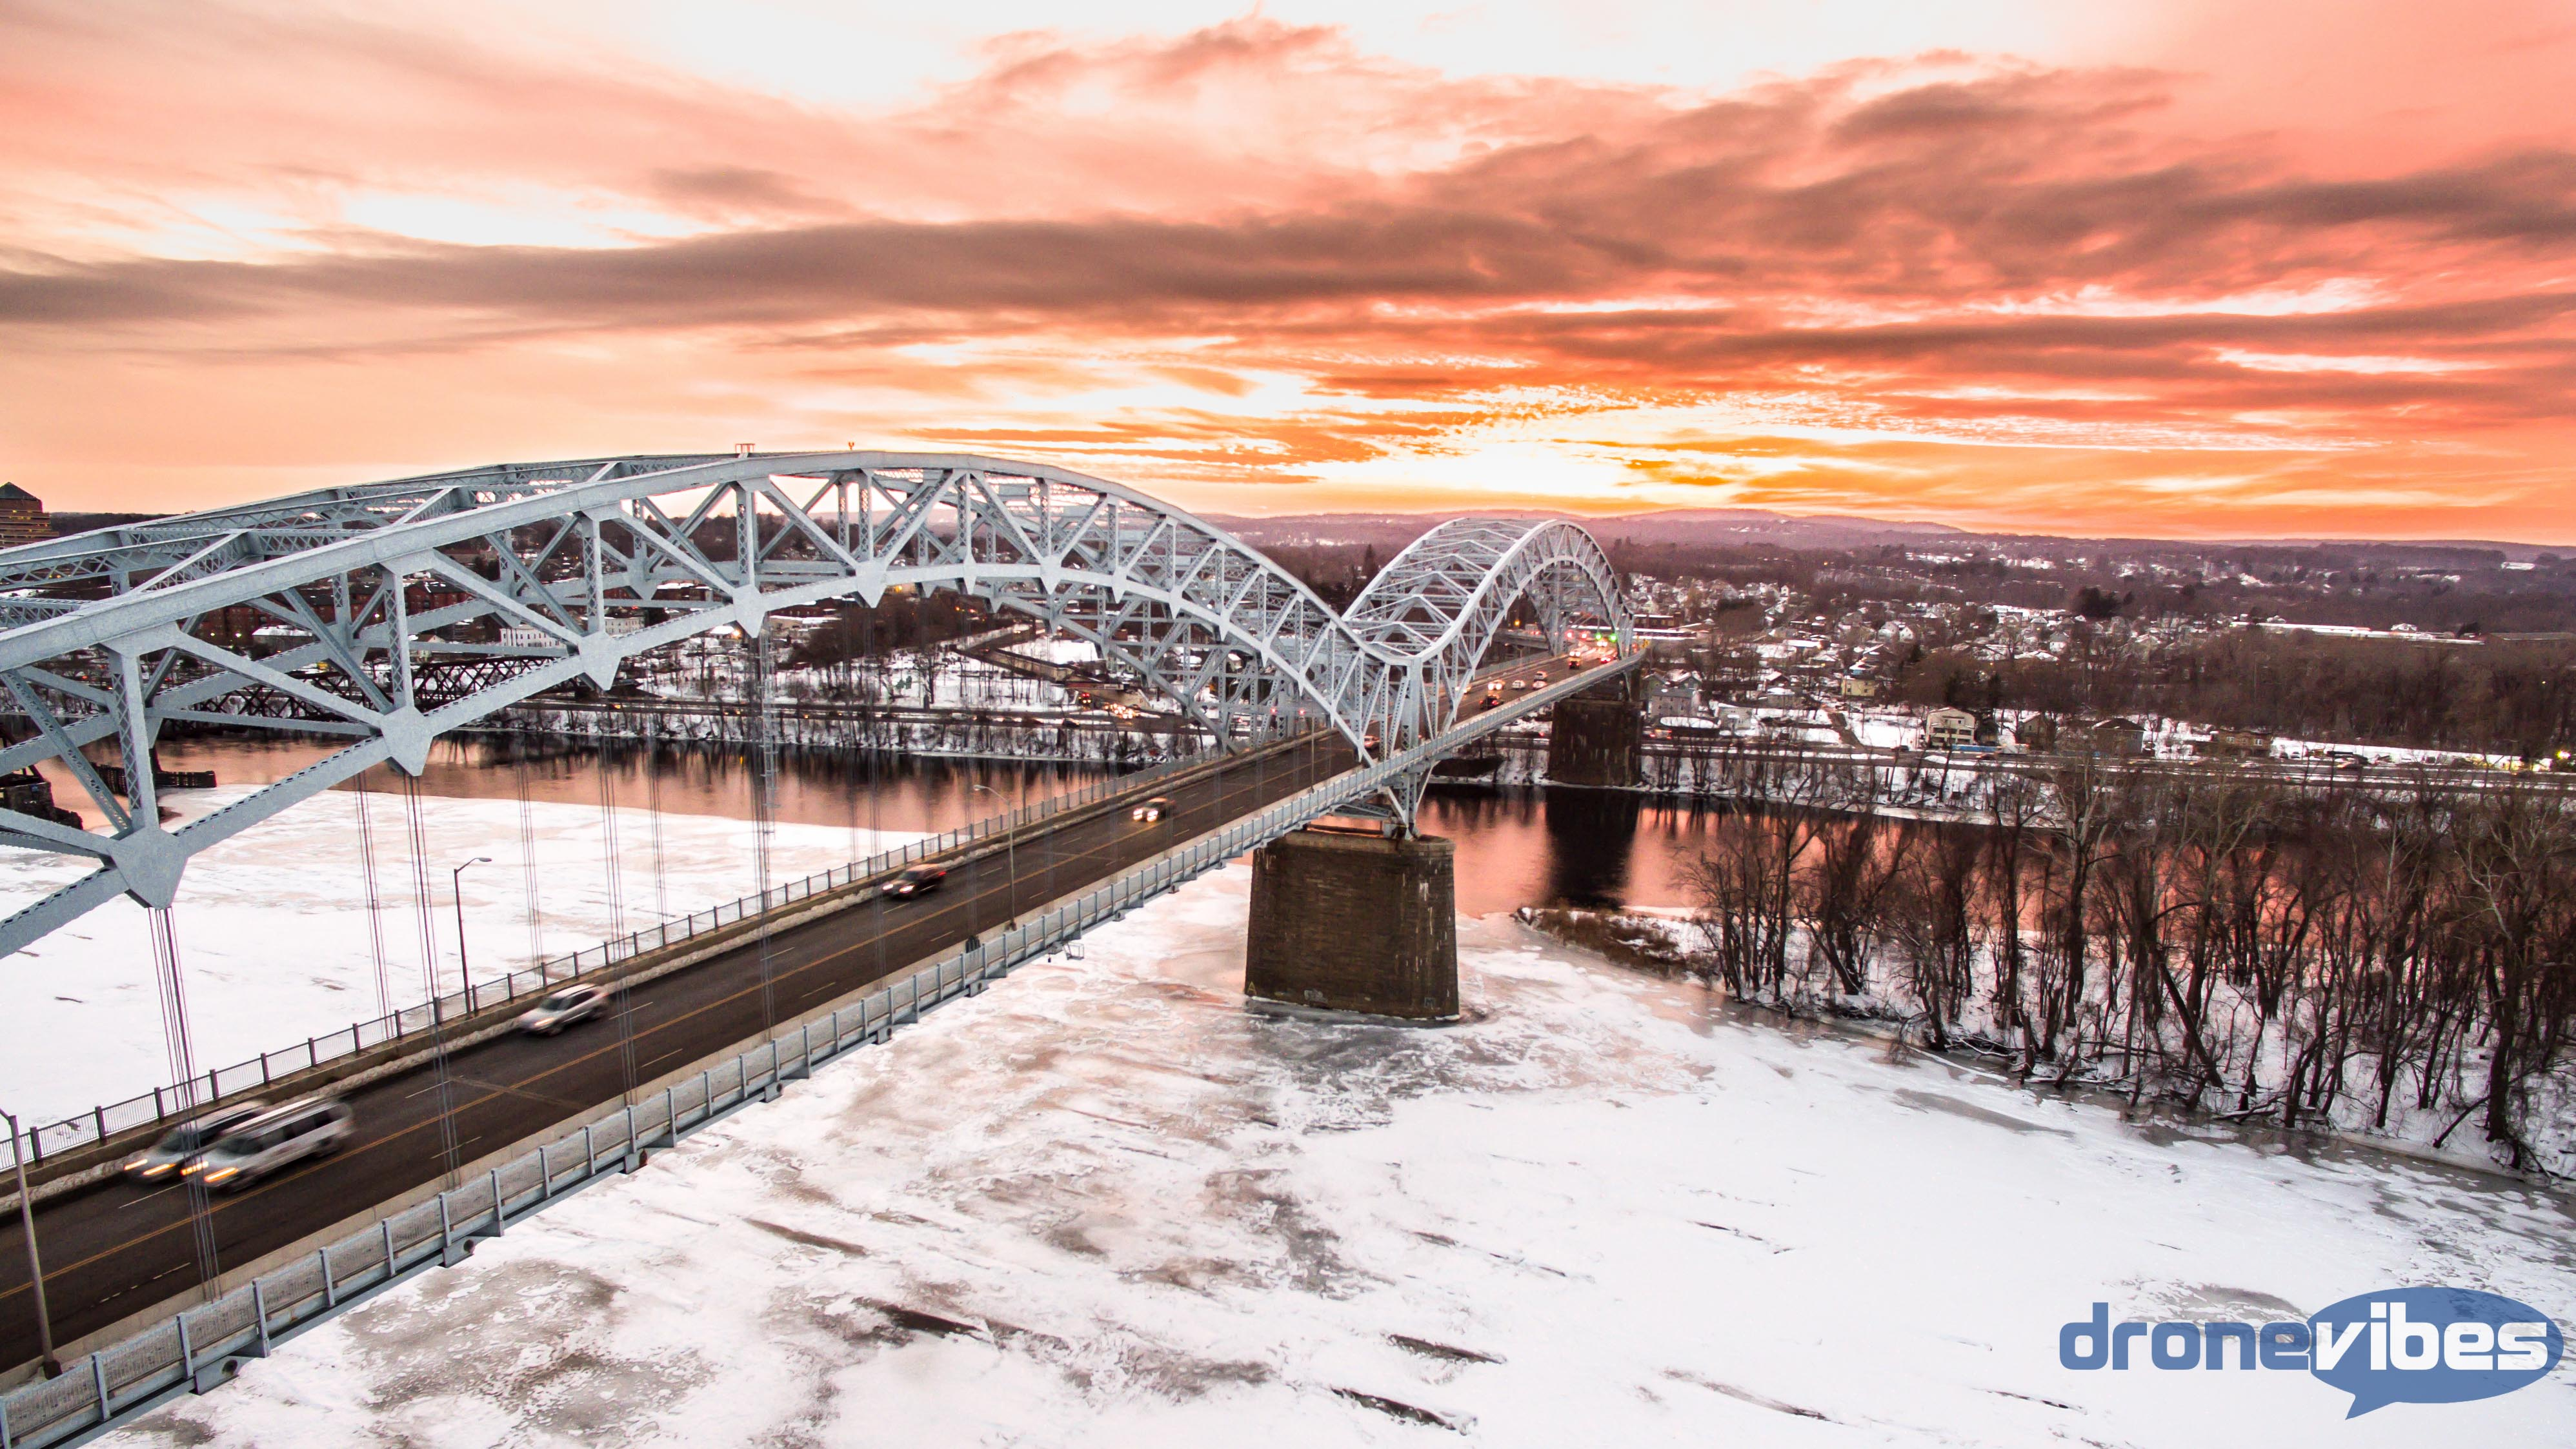 5 Tips for Flying Your Drone in Winter